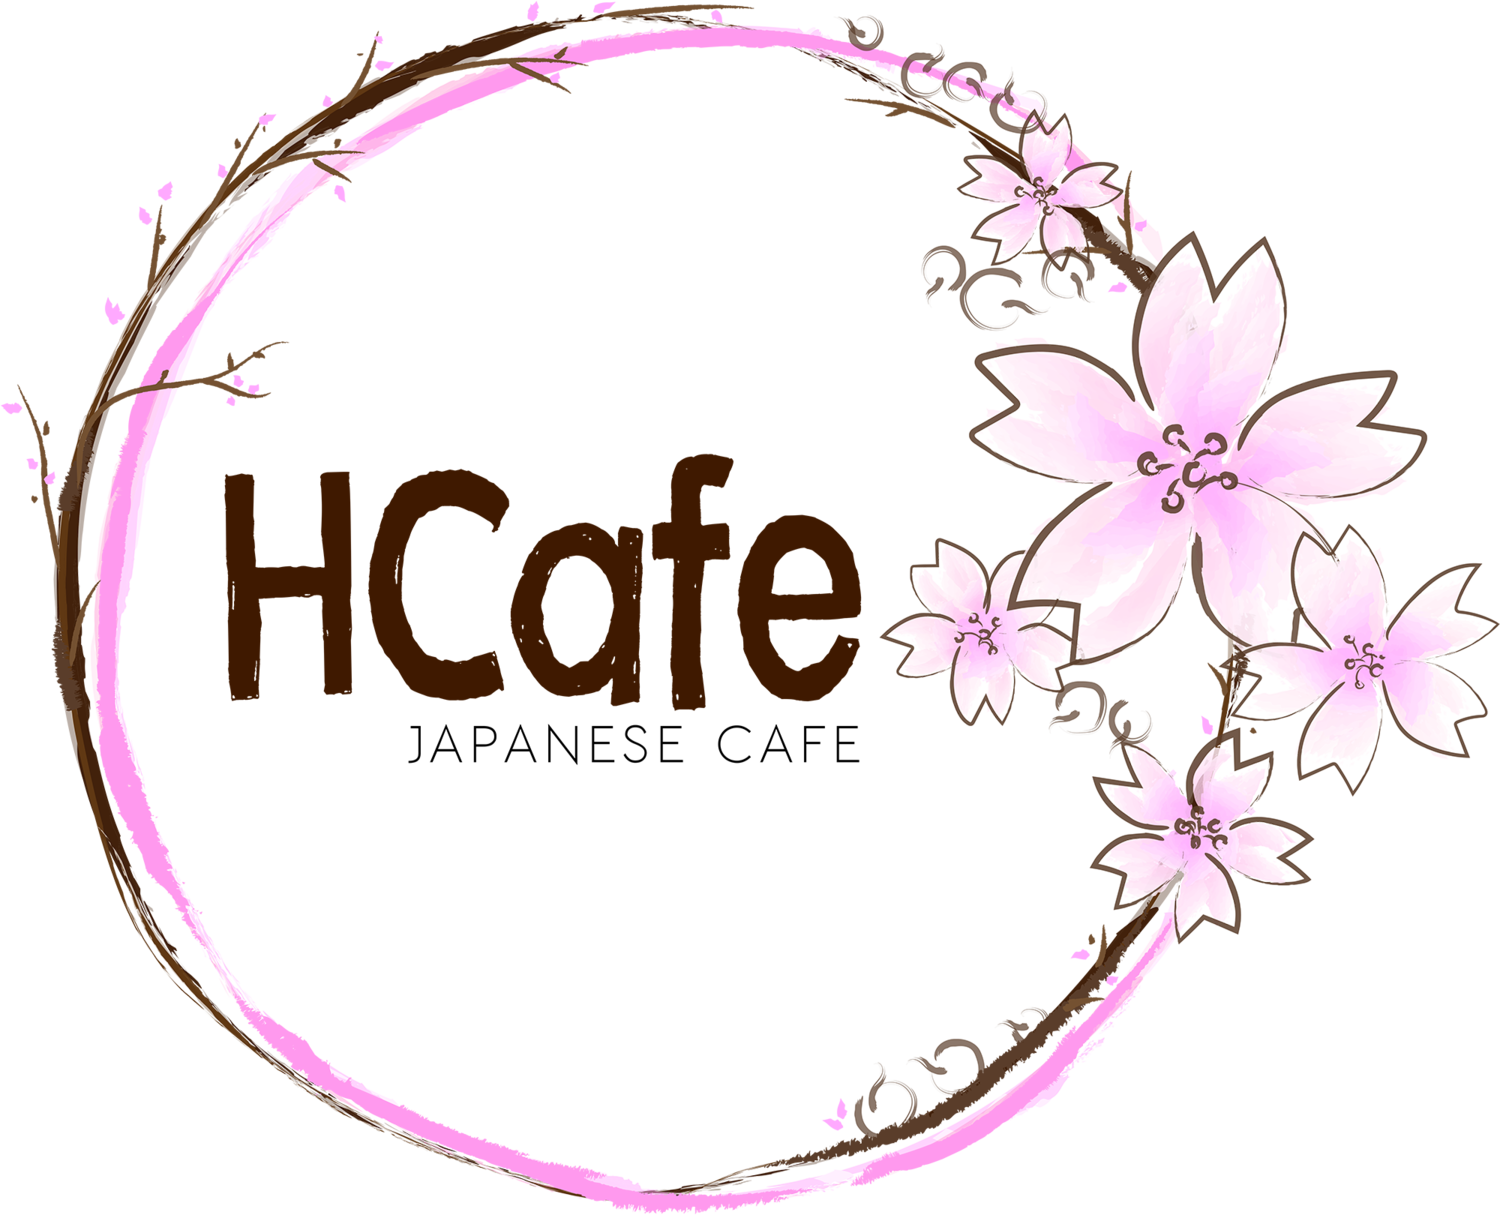 HCafe Japanese Cafe